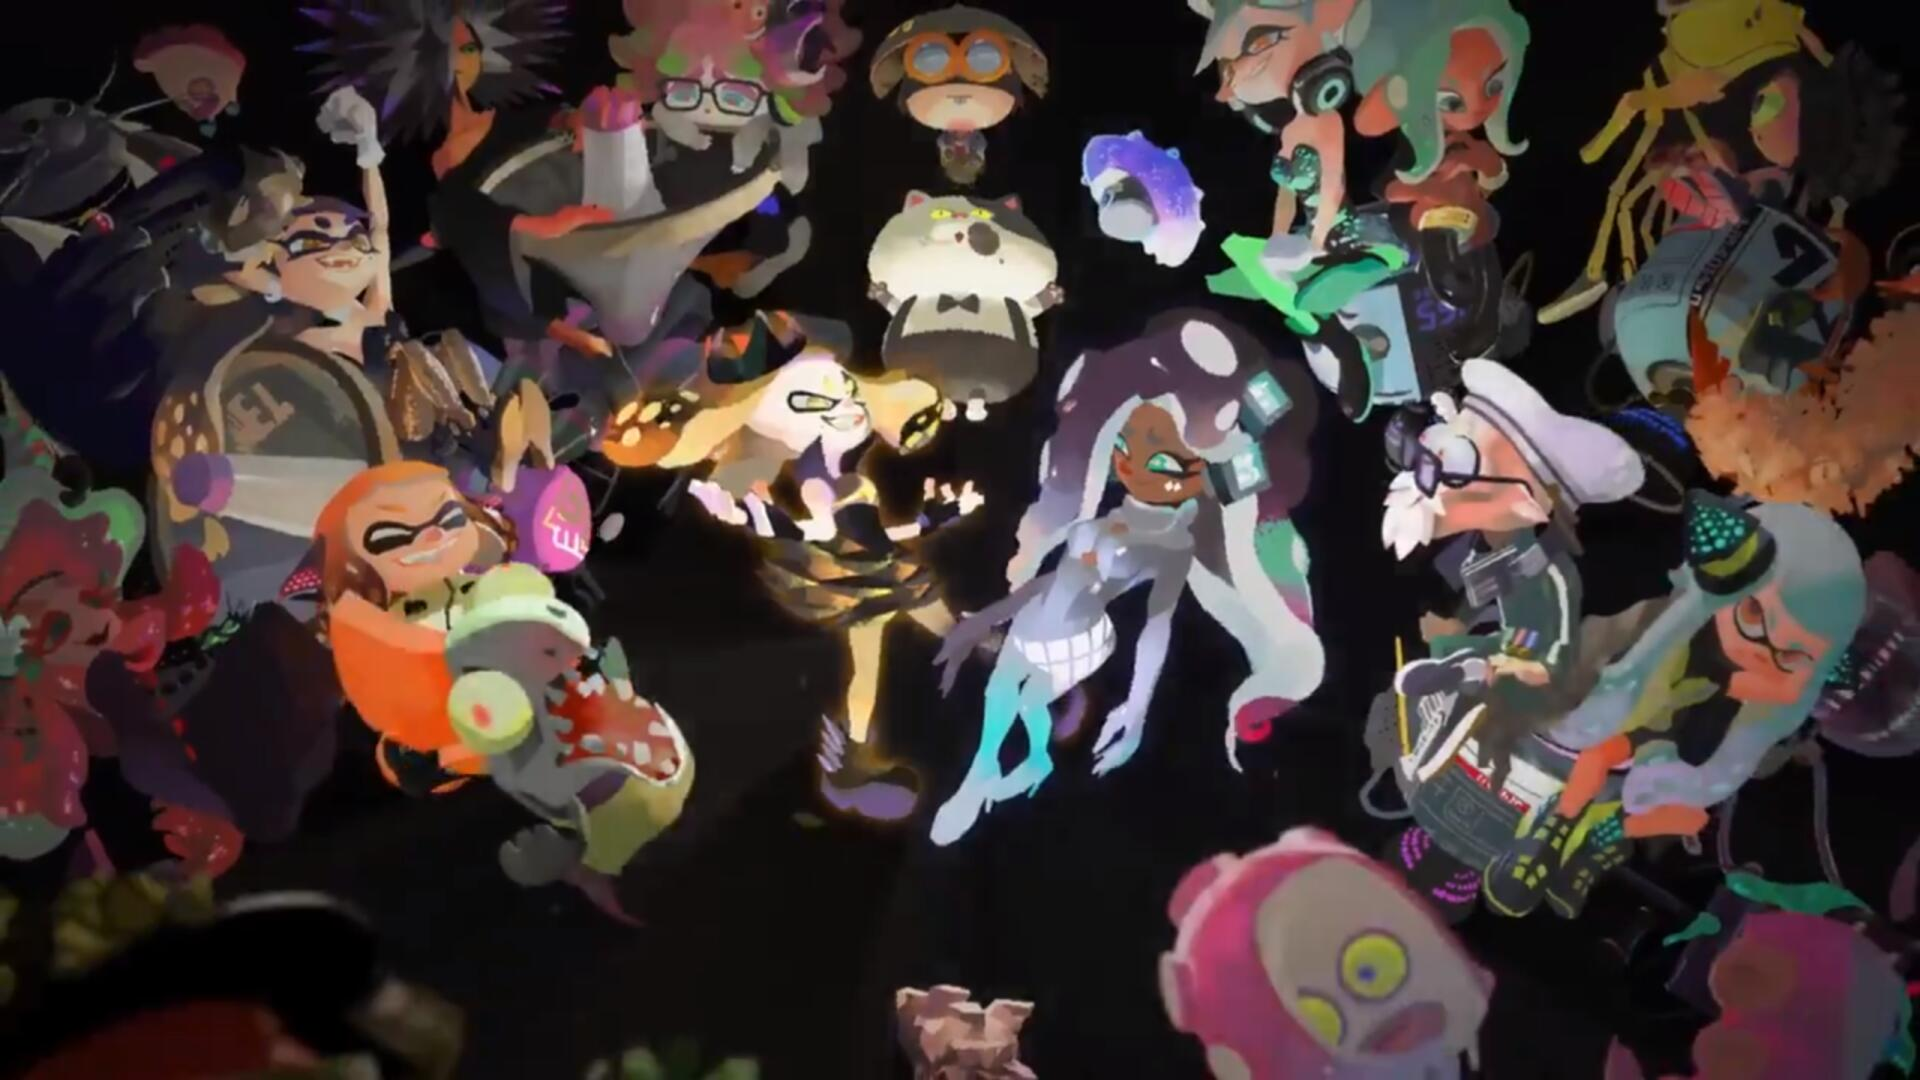 Splatoon 2's Final Splatfest Detailed, Private Splatfest Mode Coming in July